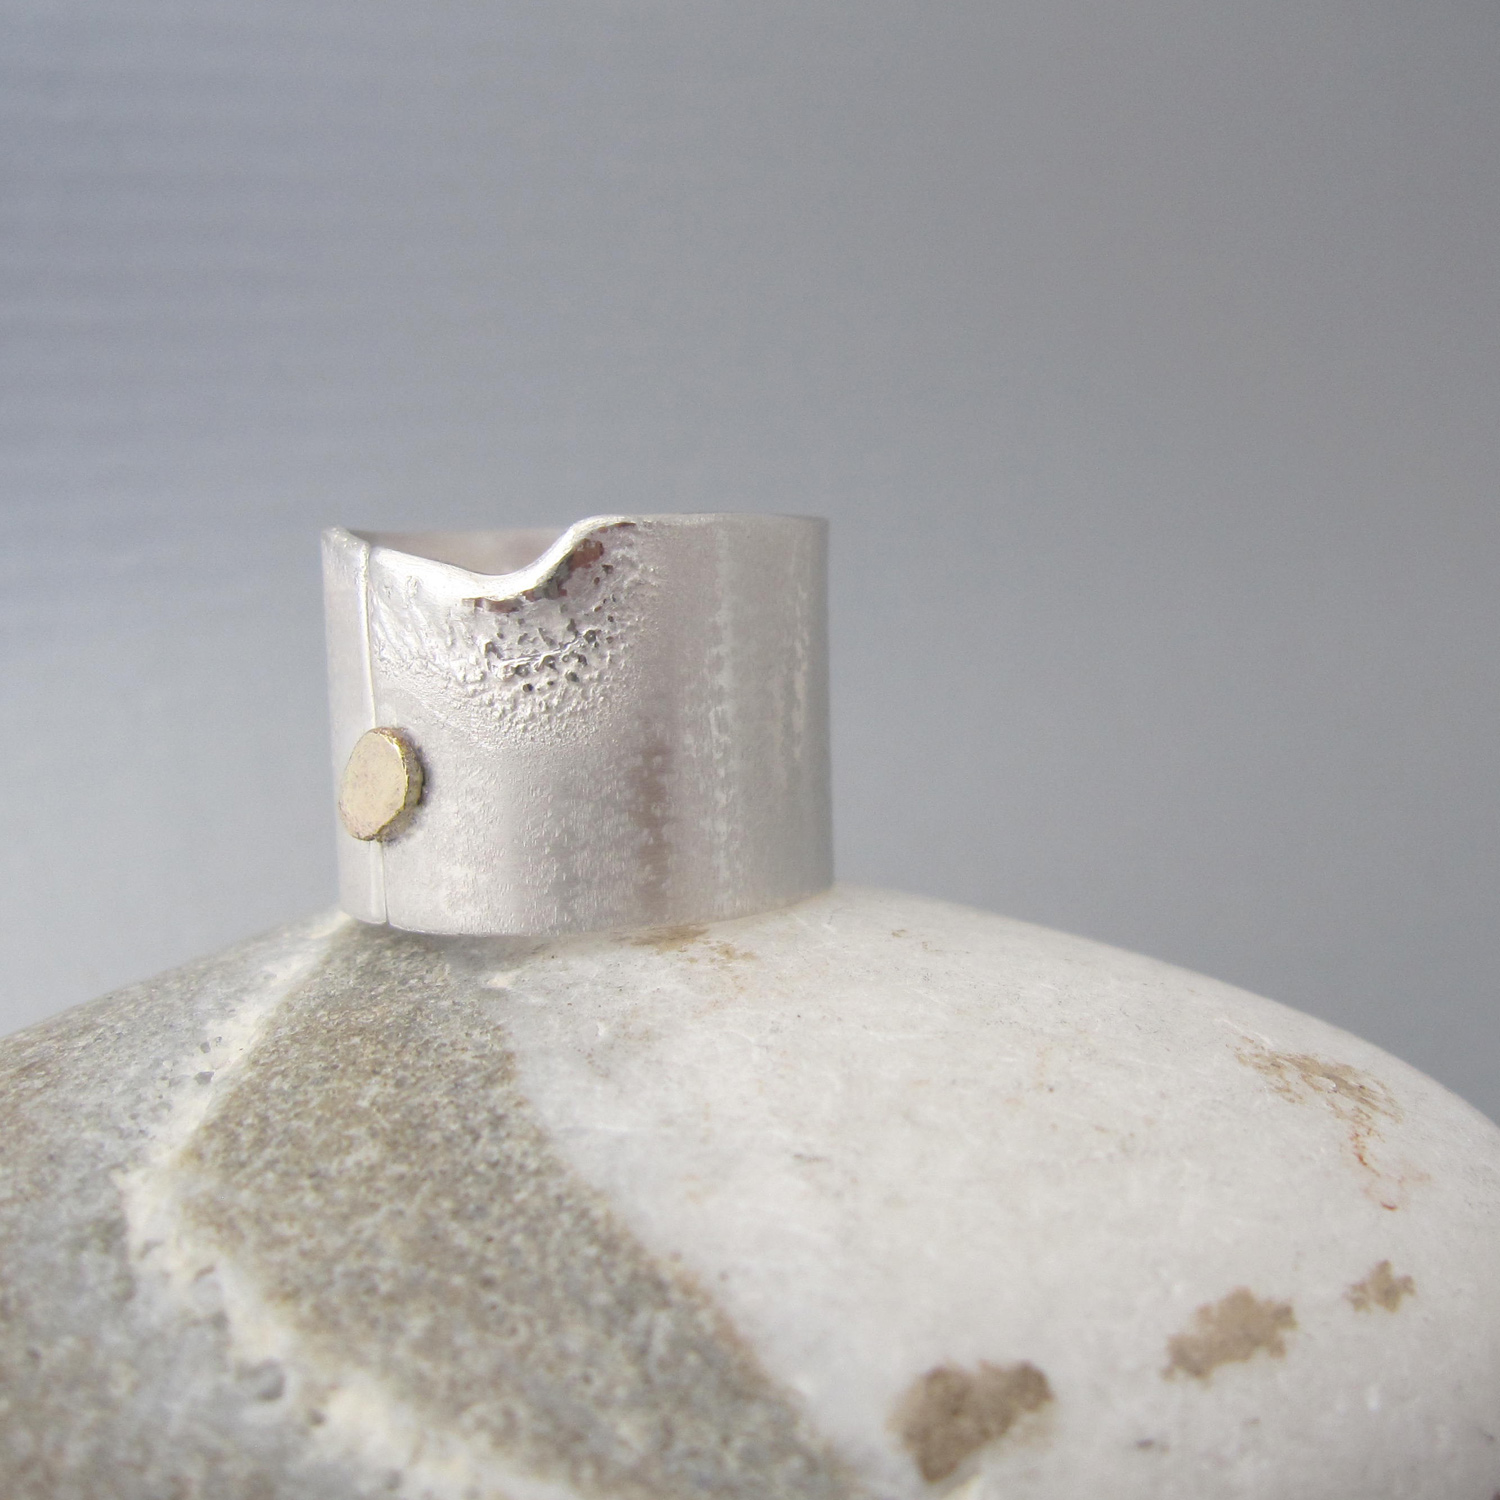 Another unique and handcrafted jewelry piece designed with nature in mind